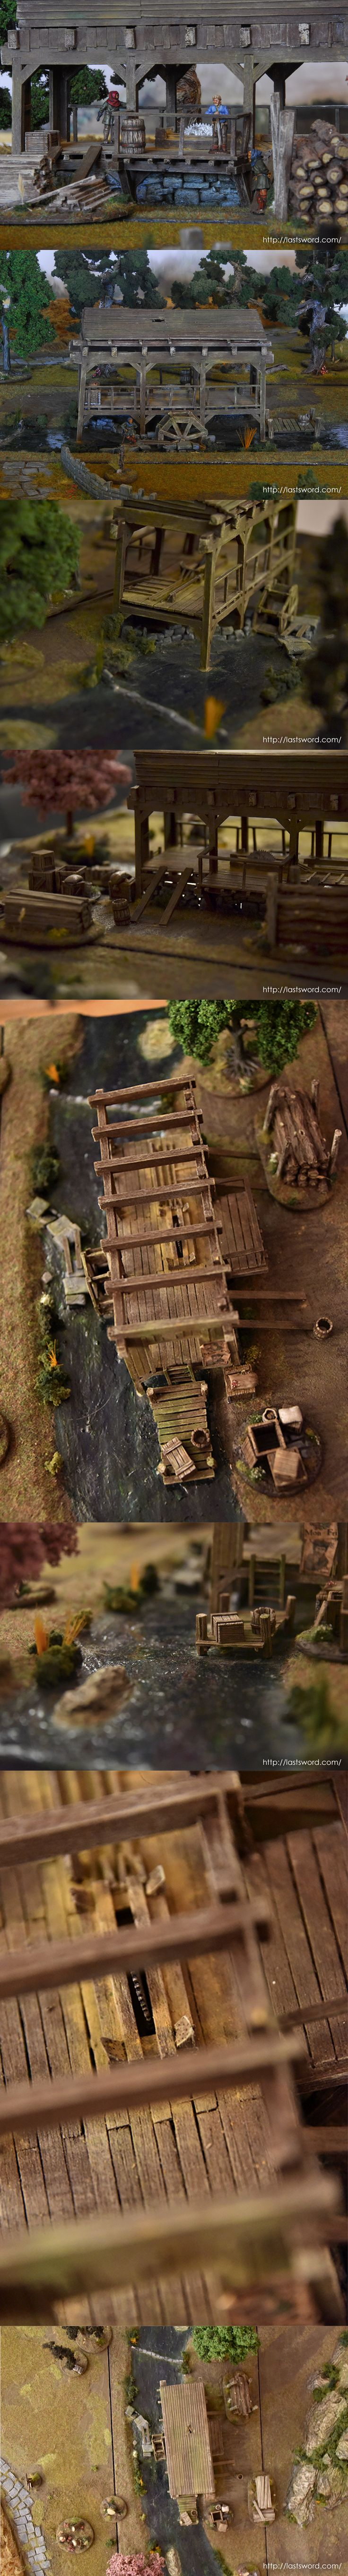 How to build a Sawmill for Warhammer Fantasy, Mordheim (Empire in flames) and 1650 A capa y Espada. Painted by Asdarel.